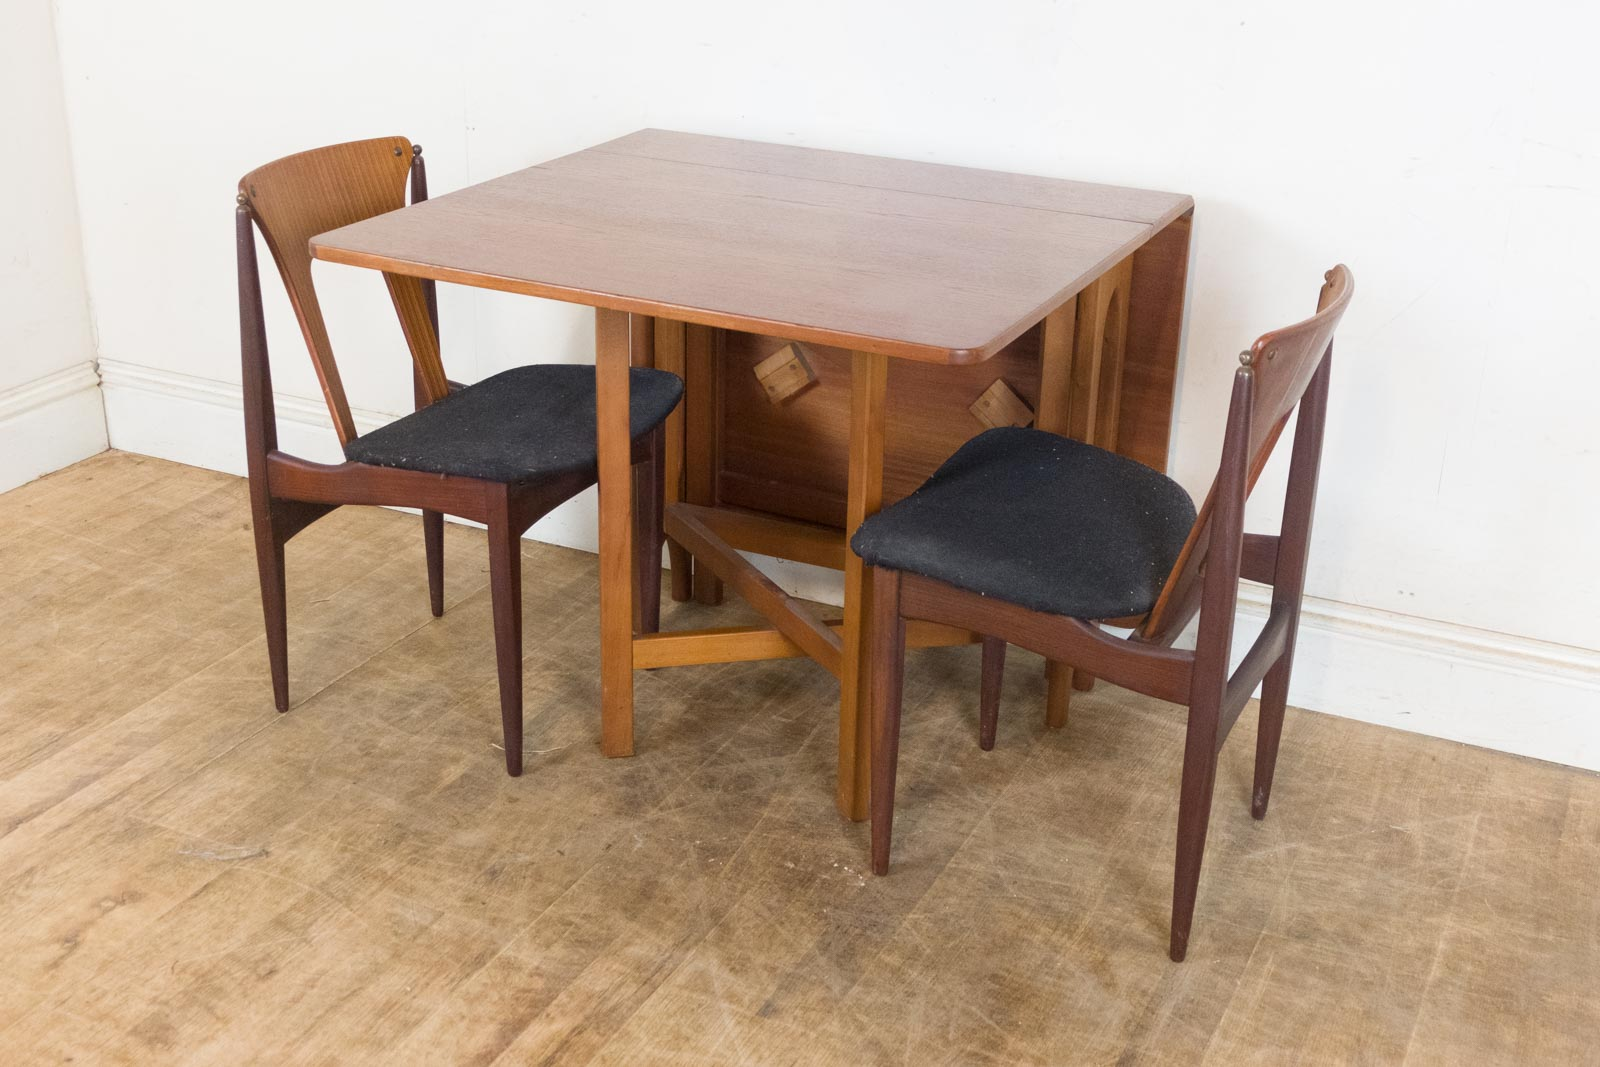 Vintage Retro Teak Drop Leaf Dining Table And 2 EON Chairs